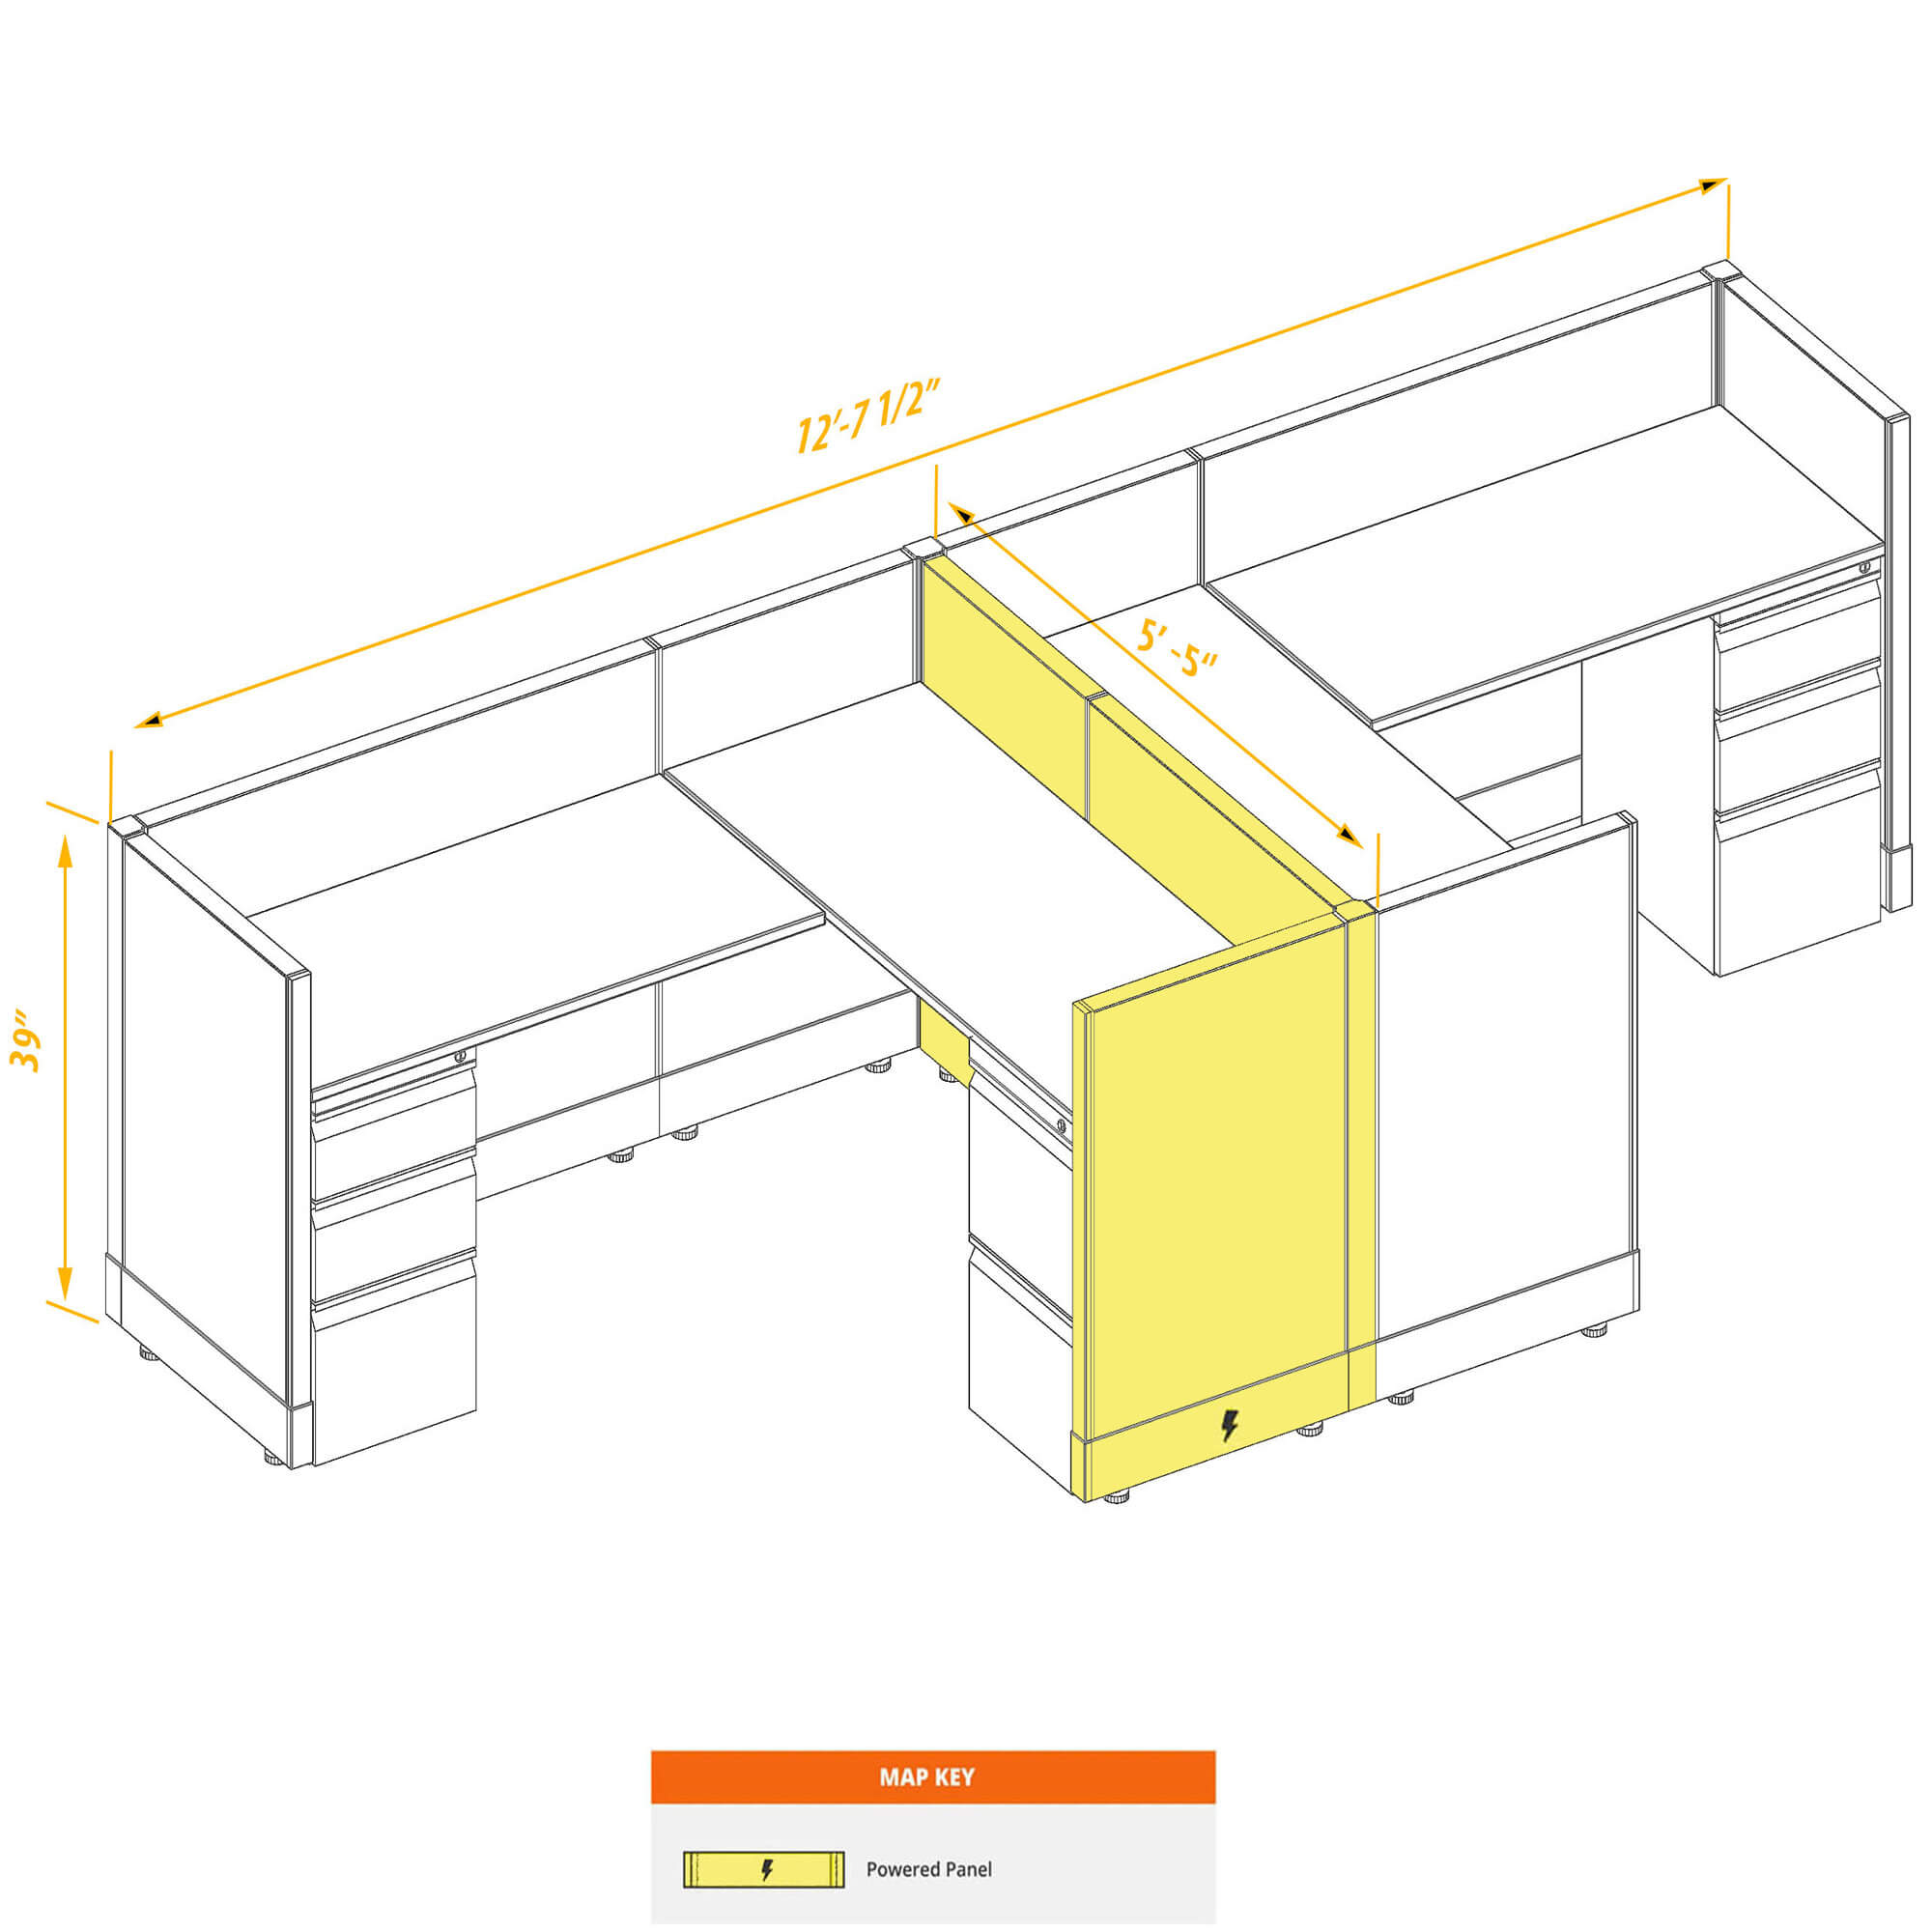 Modular furniture CUB 2a 39 P 56 PSO